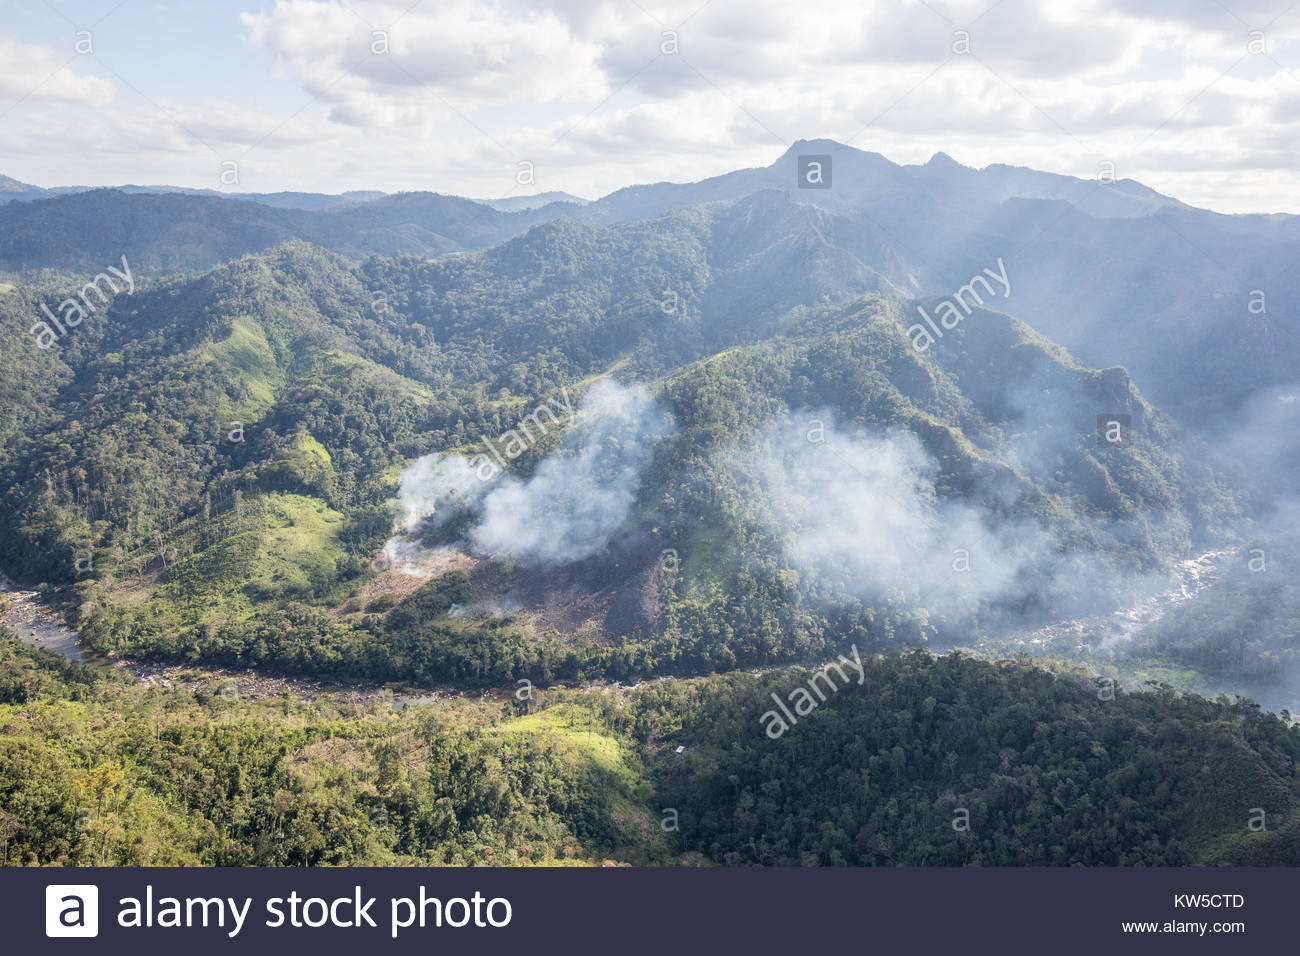 Deforestation in Honduras may be the largest threat to lost cities hidden within the rainforest. - Stock Image